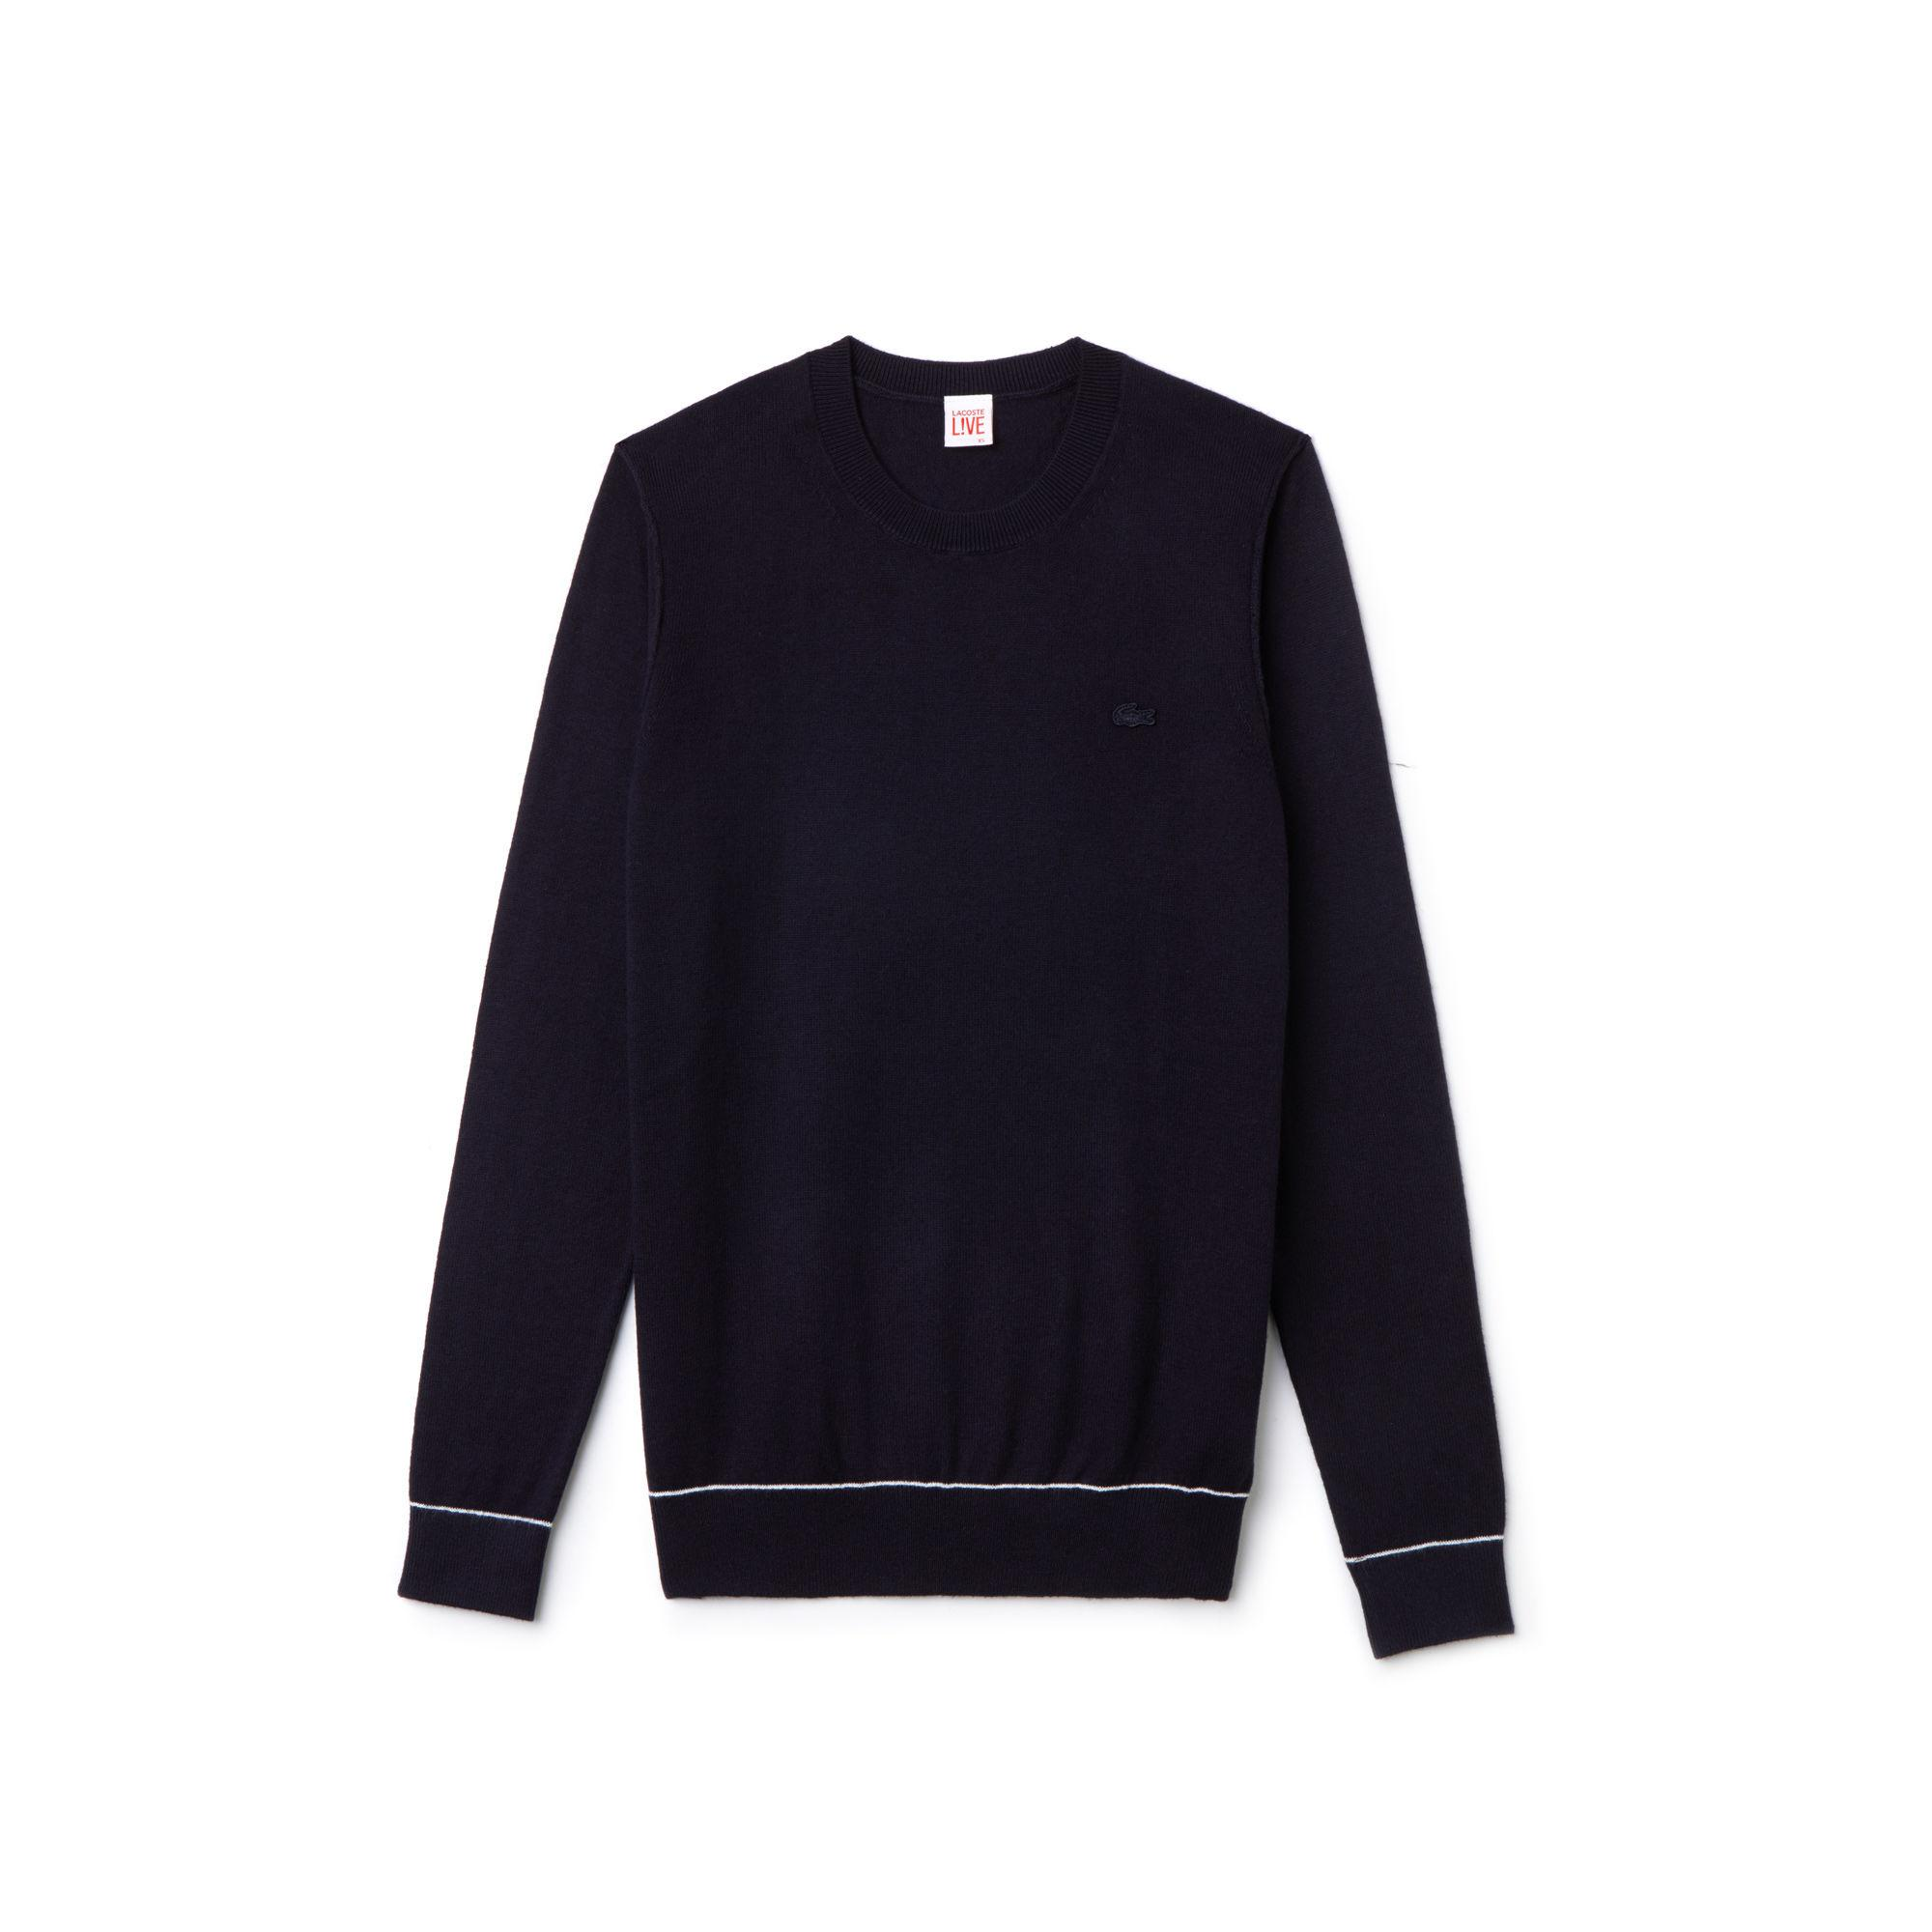 5e9b592fdd Lyst - Lacoste Live Crew Neck Cotton And Cashmere Jersey Sweater in Blue